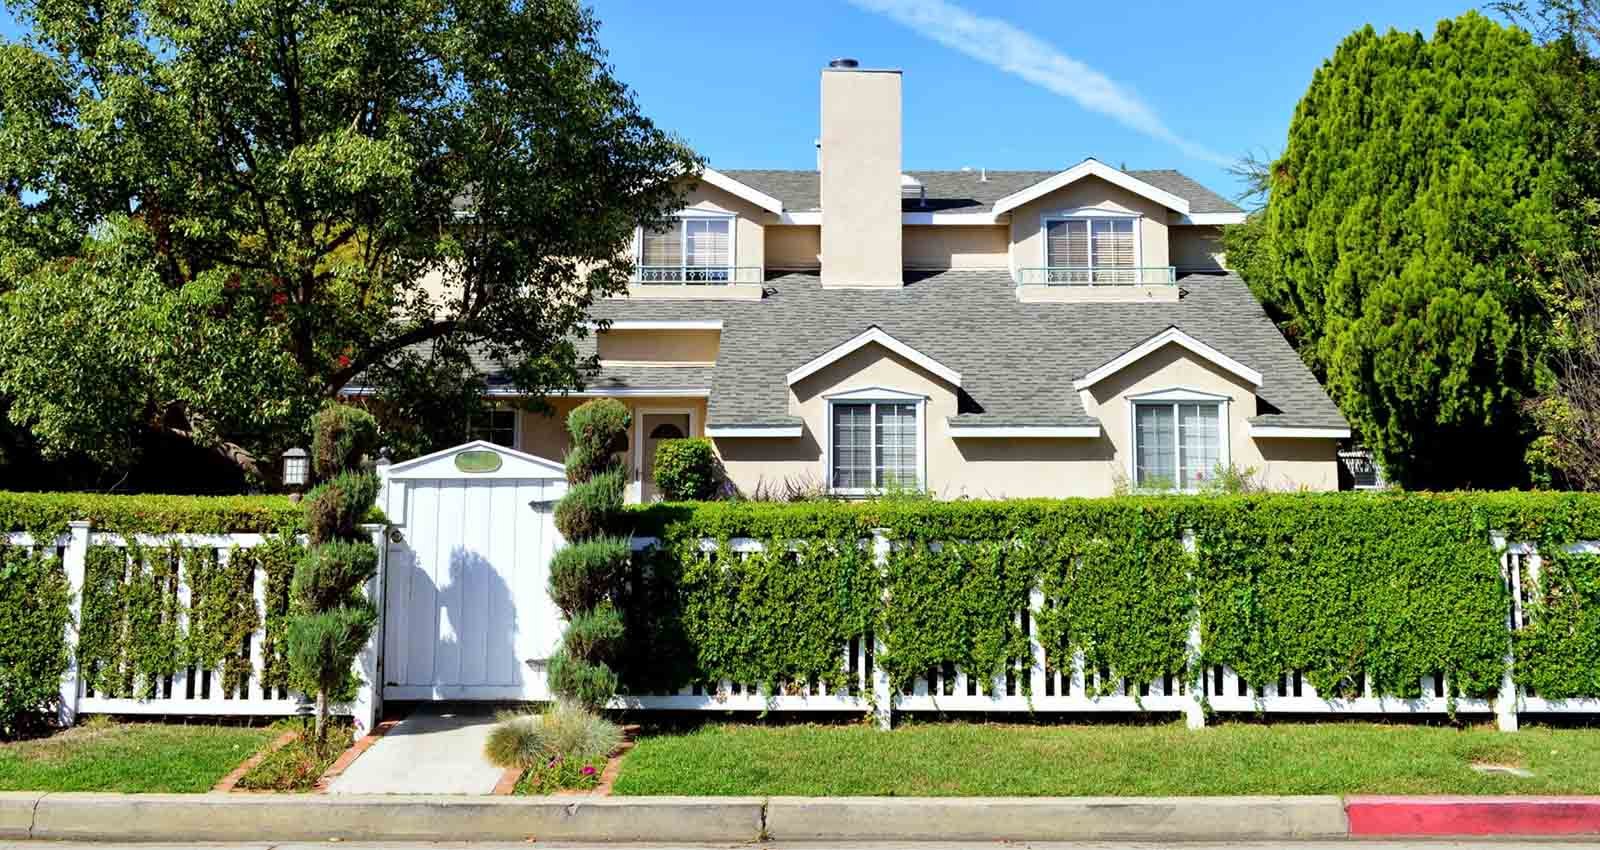 Woodland Hills Real Estate and Homes